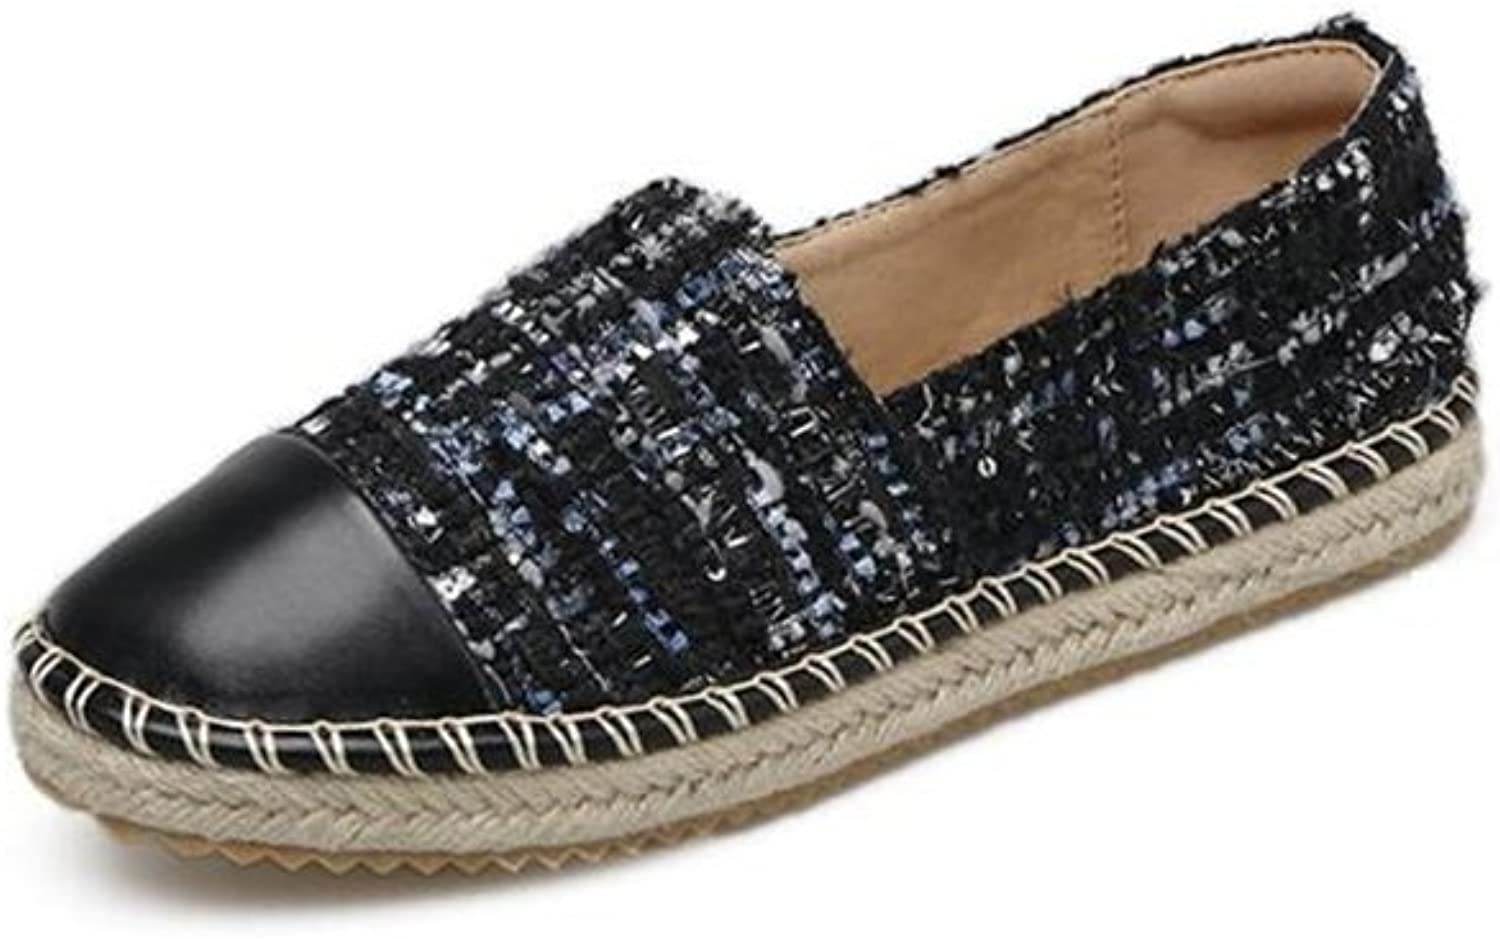 Super frist Women's Deconstructed Alpargata Casual Loafer